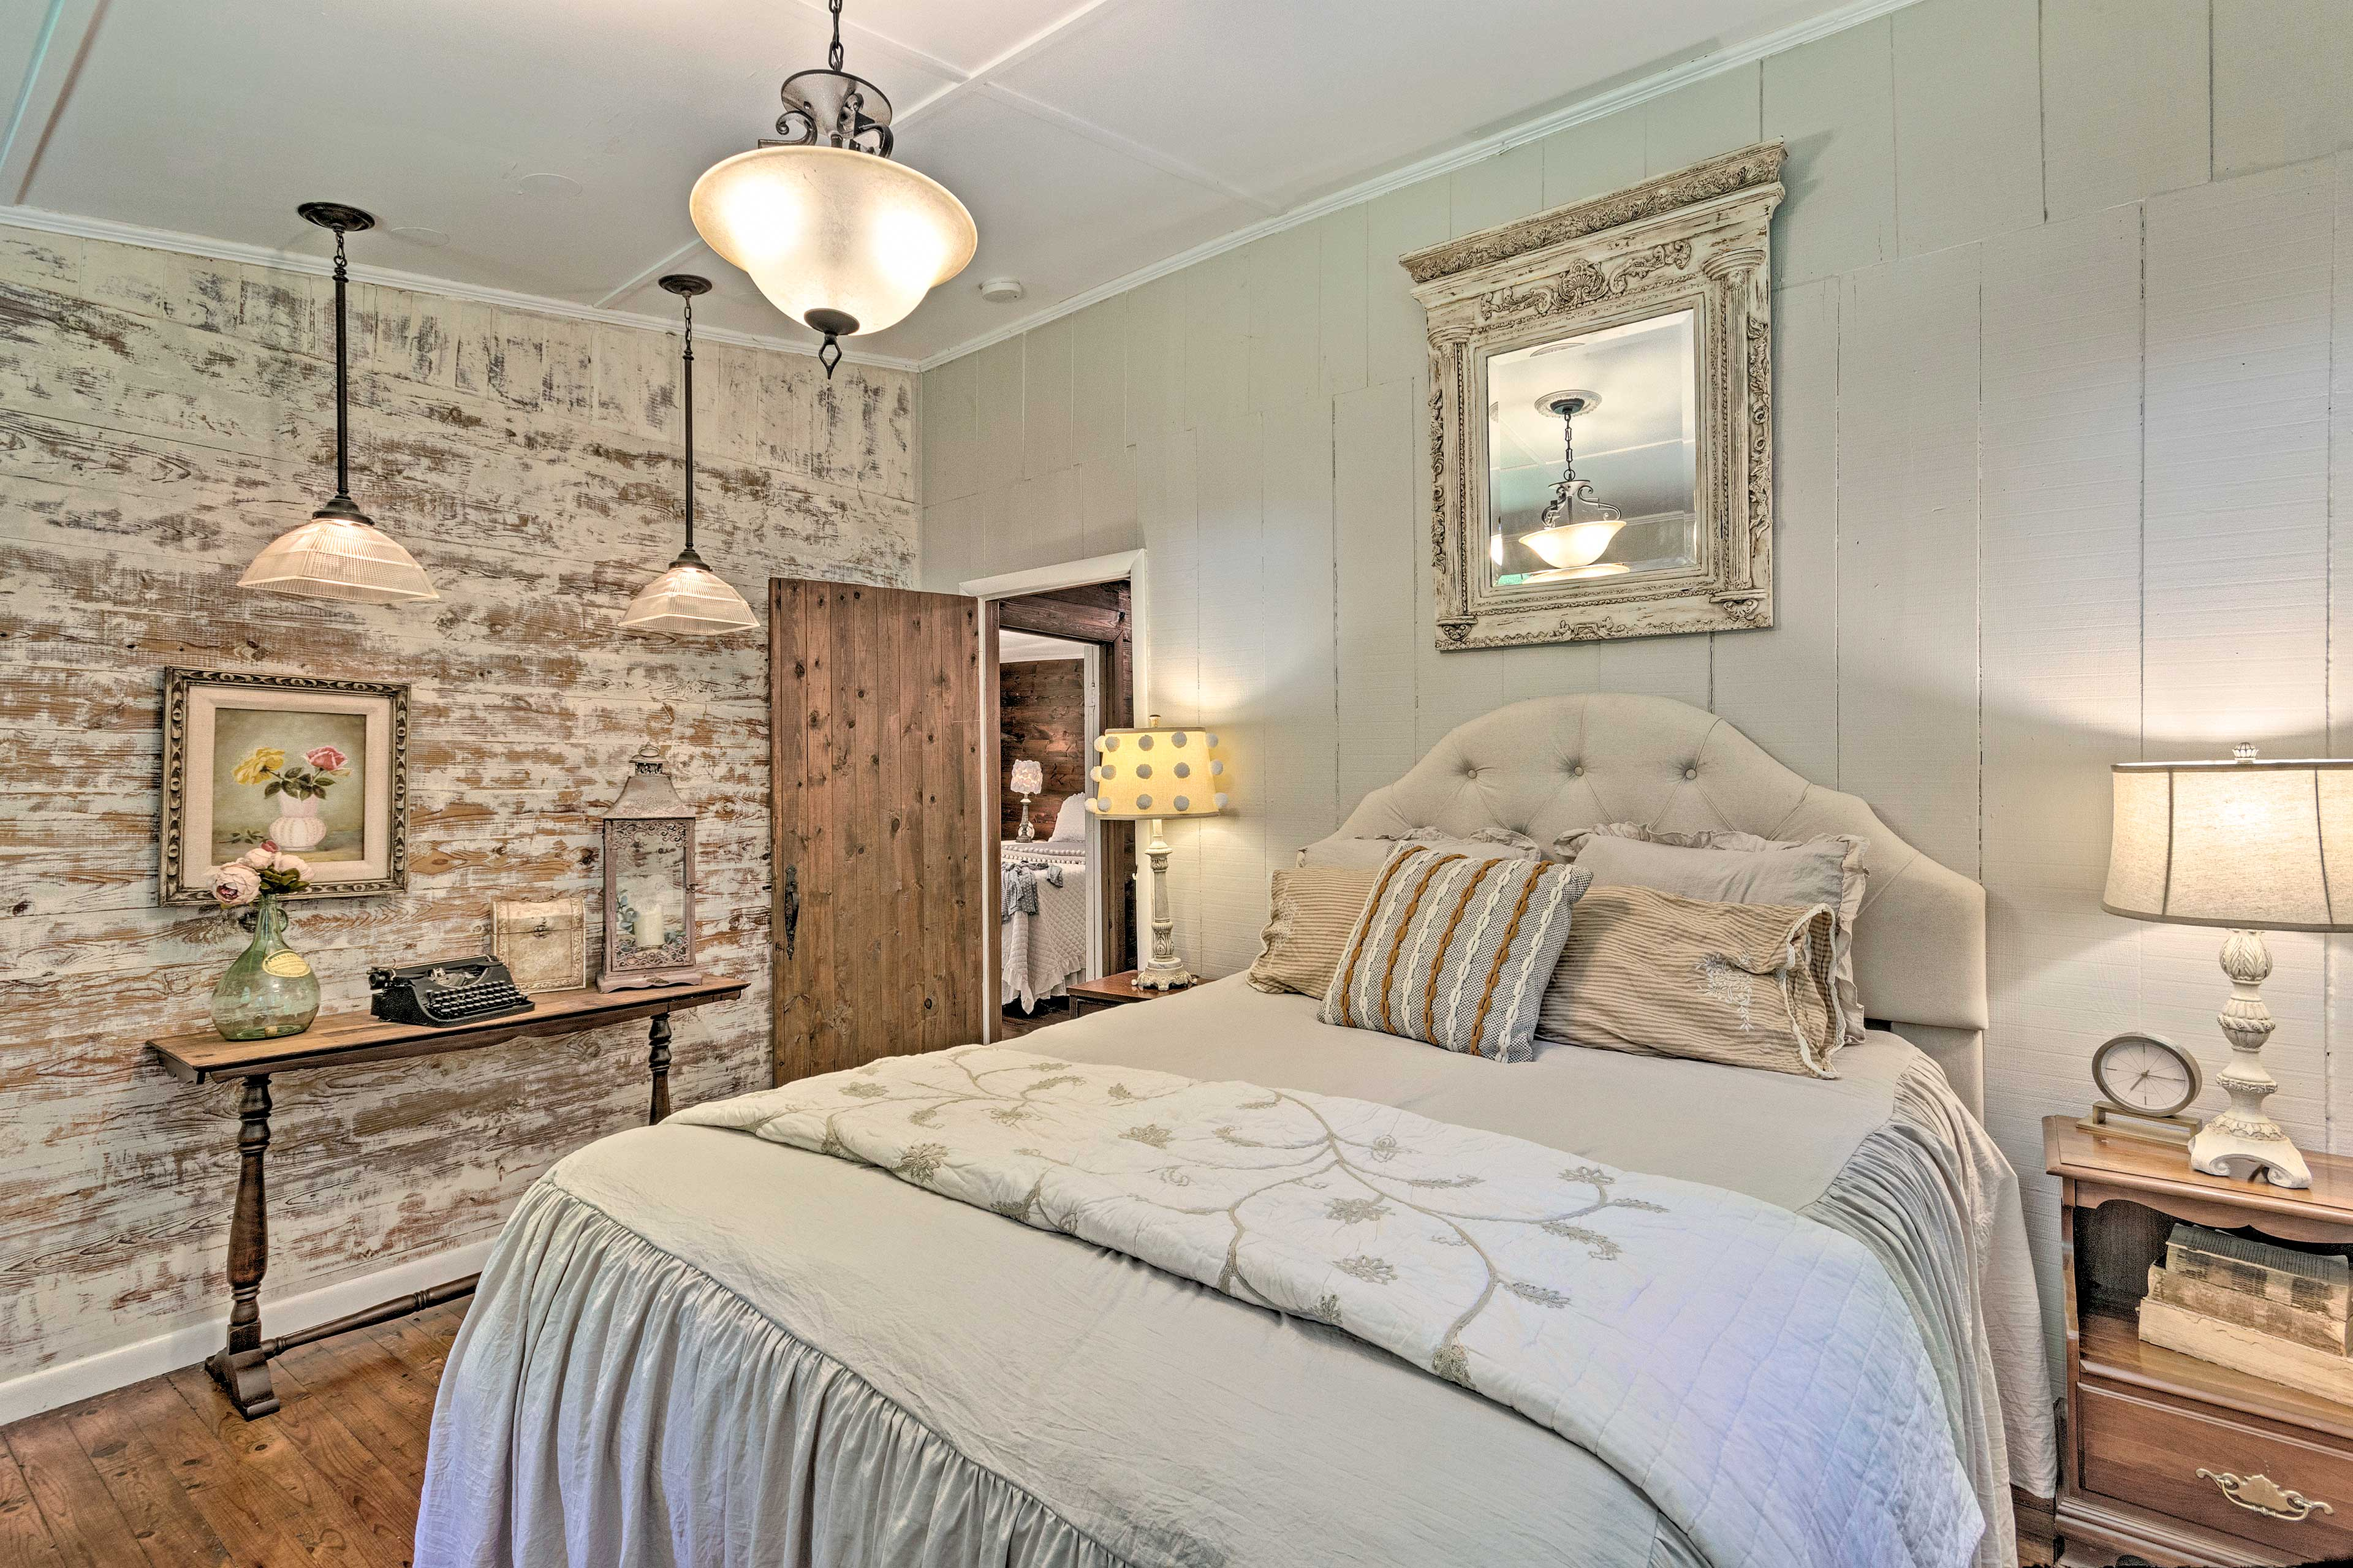 Two guests can sleep on the queen bed.